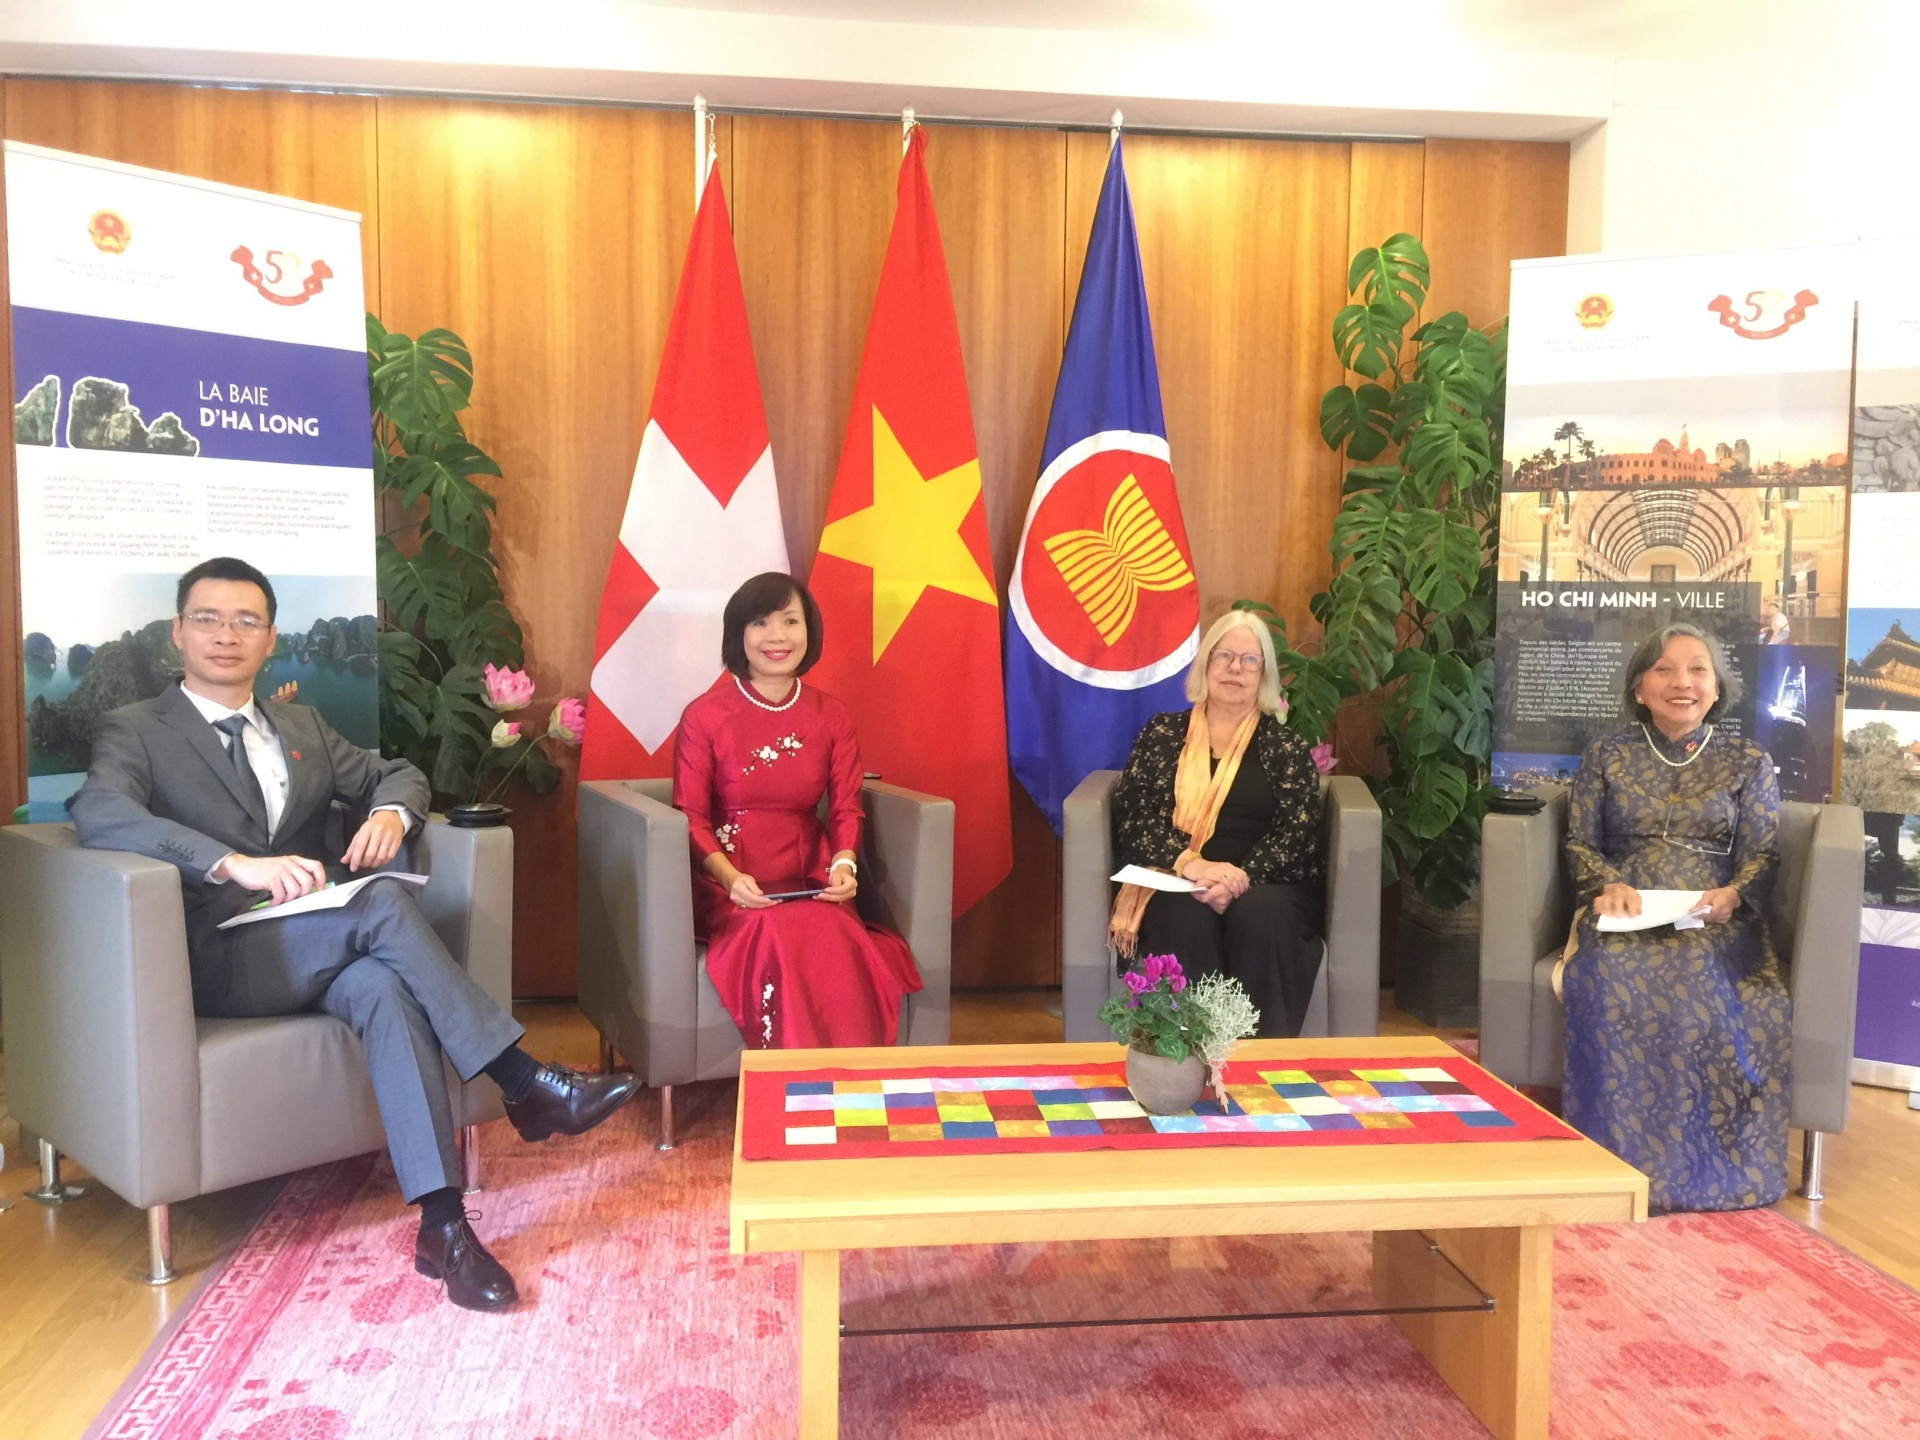 Guests joining the event from Bern (left to right): President of the Association of Vietnamese Intellectuals and Experts in Switzerland Luu Vinh Toan; Ambassador of Viet Nam to Switzerland Le Linh Lan, President of the Viet Nam-Switzerland Friendship Association Anjuska Weil; General Secretary of the Vietnamese Association in Switzerland Ngoc Dung Moser